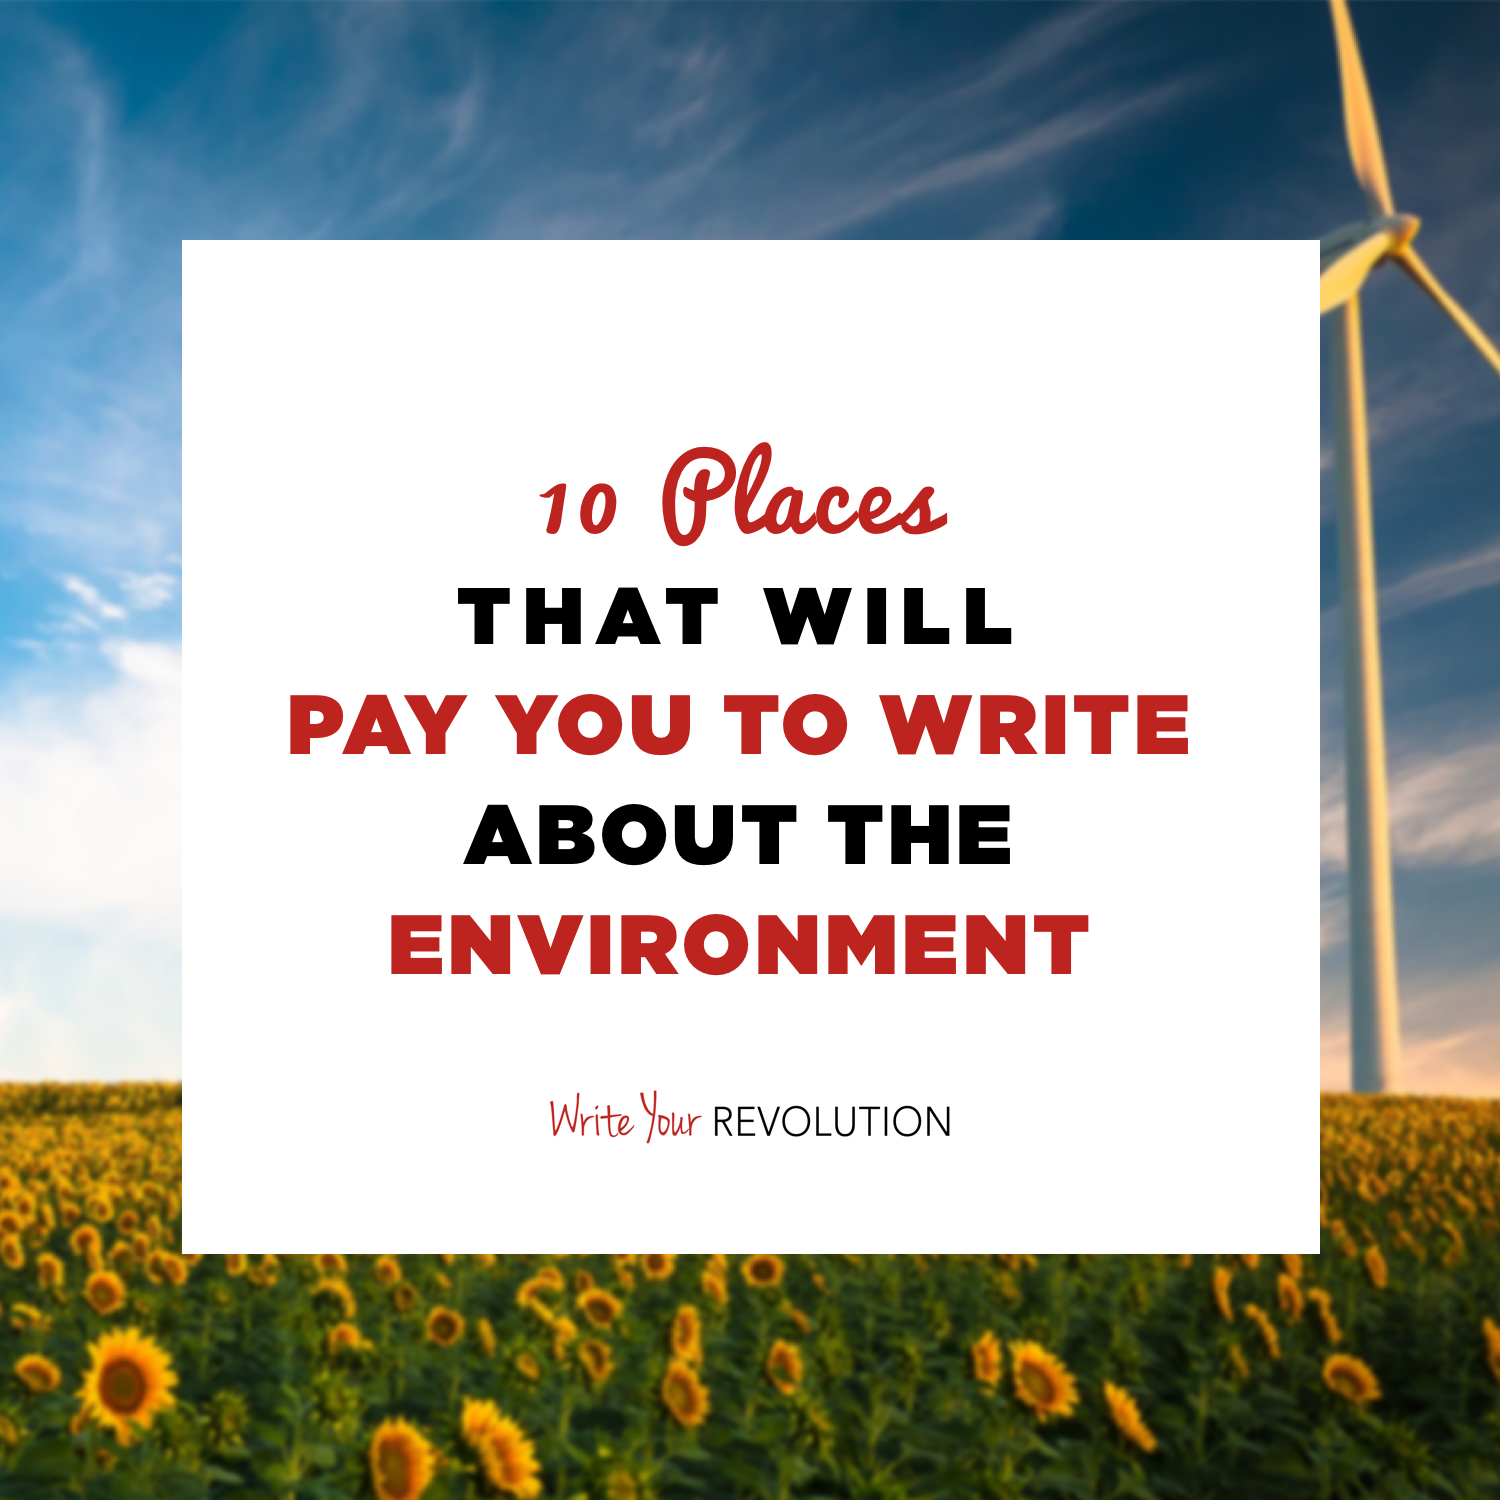 10 Places That Will Pay You to Write About the Environment